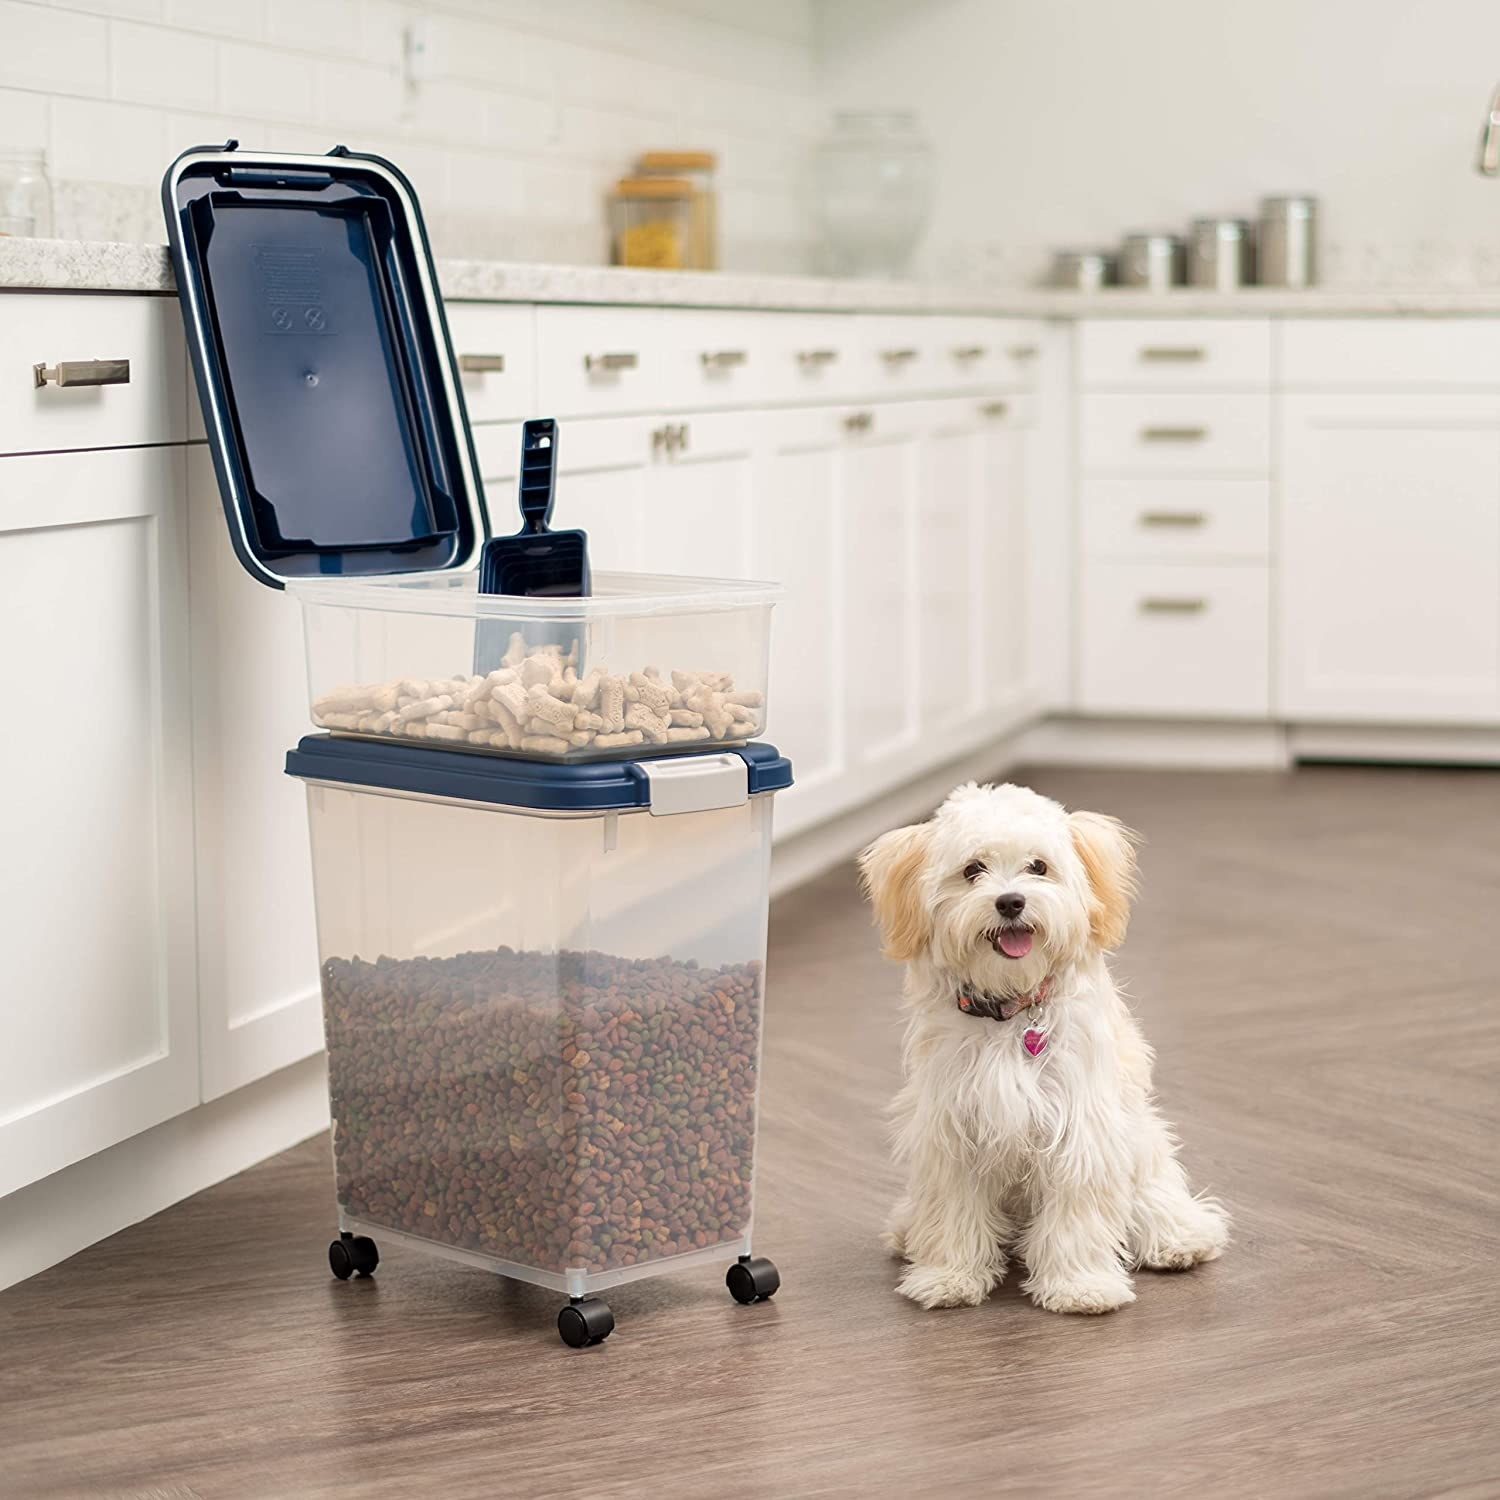 wheeled deep dog food plastic bin with snap-on lid topped with smaller treat bin; cute dog sits next to it